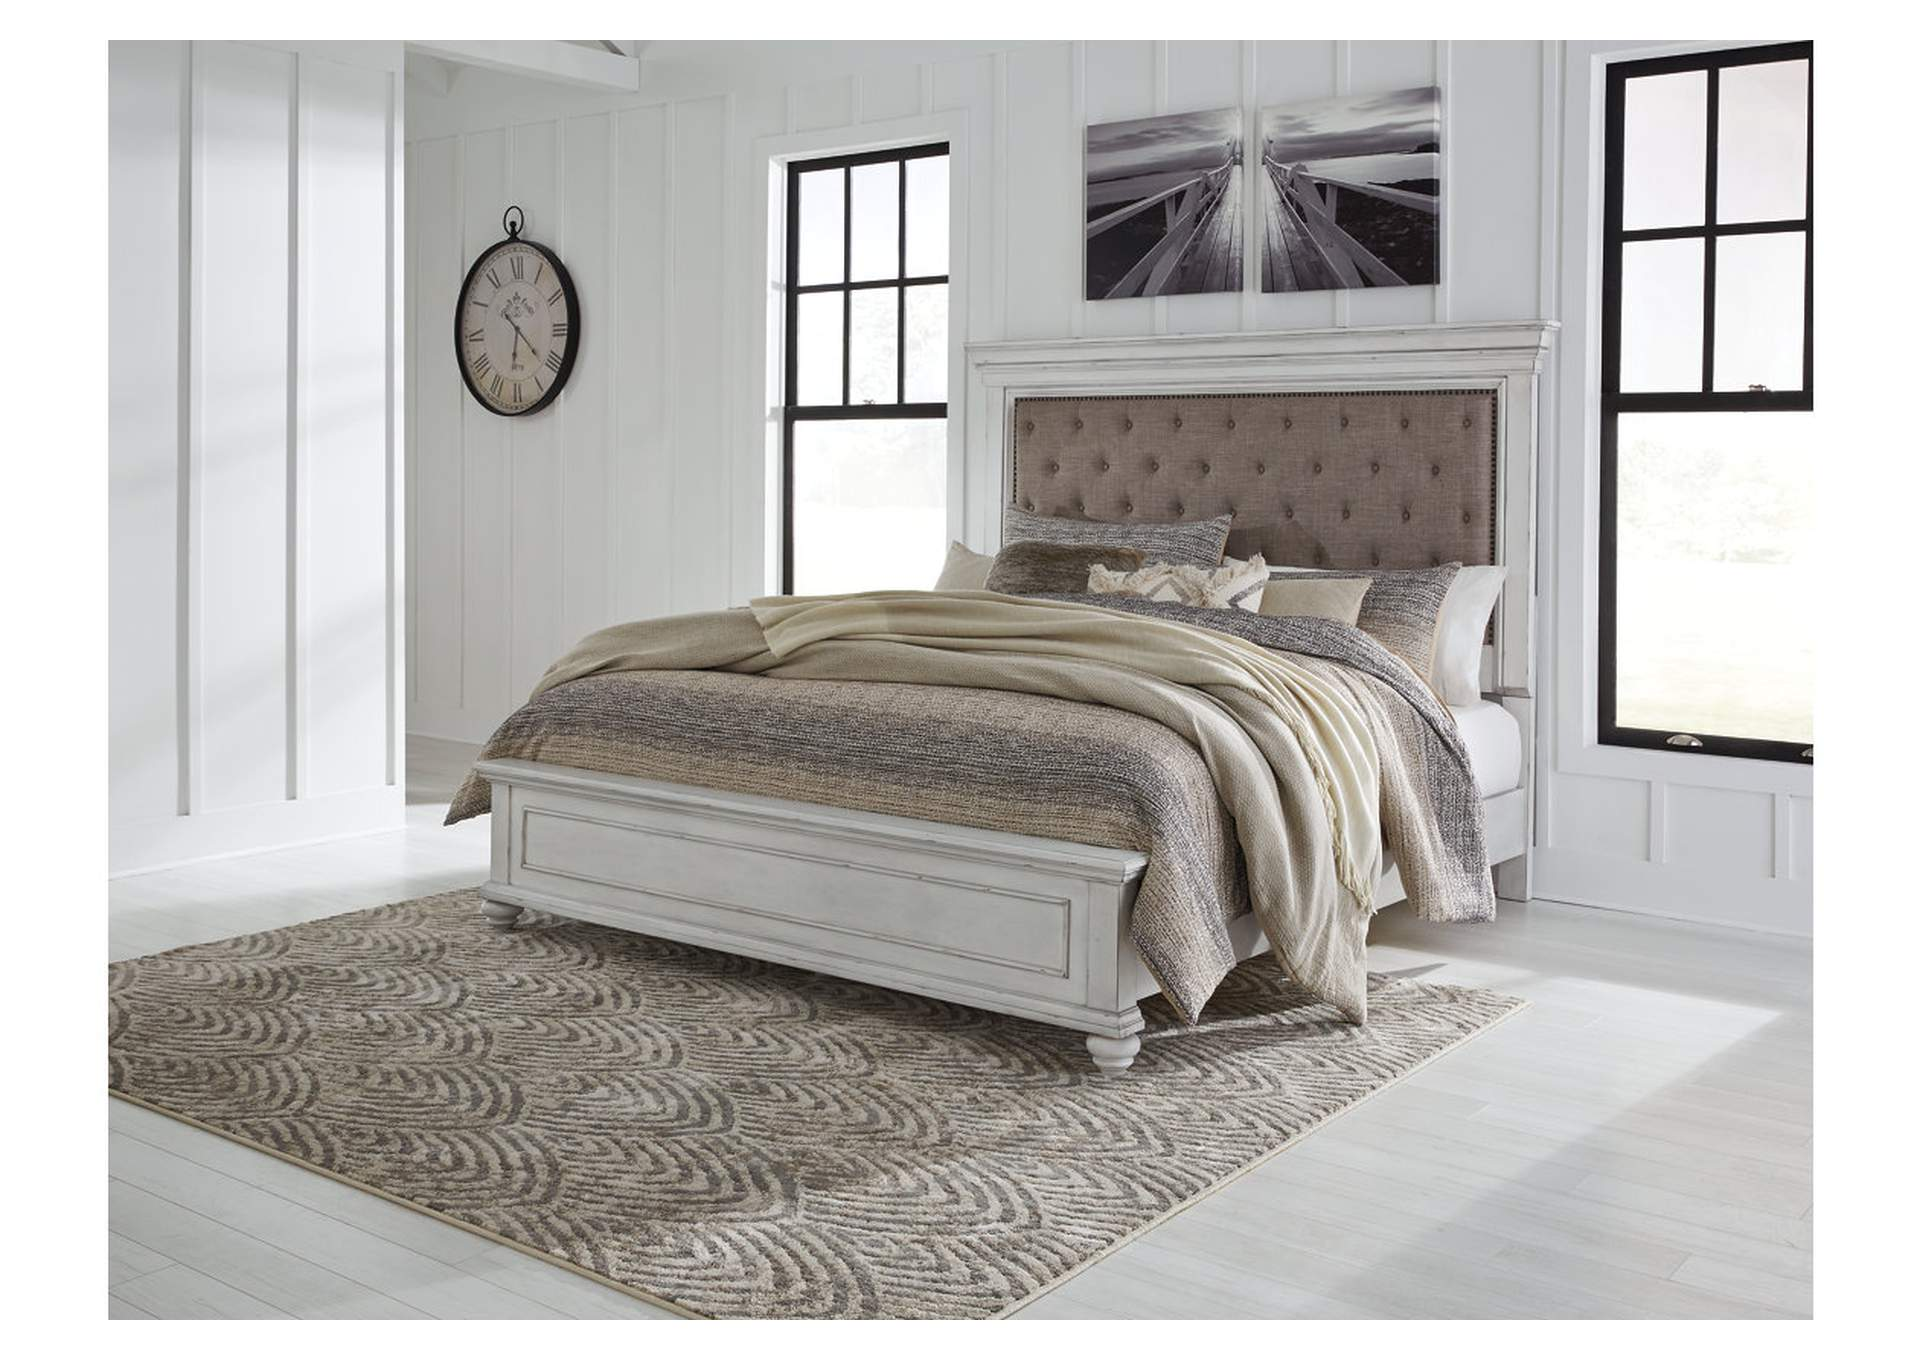 Kanwyn Whitewash King Upholstered Panel Bed,Benchcraft